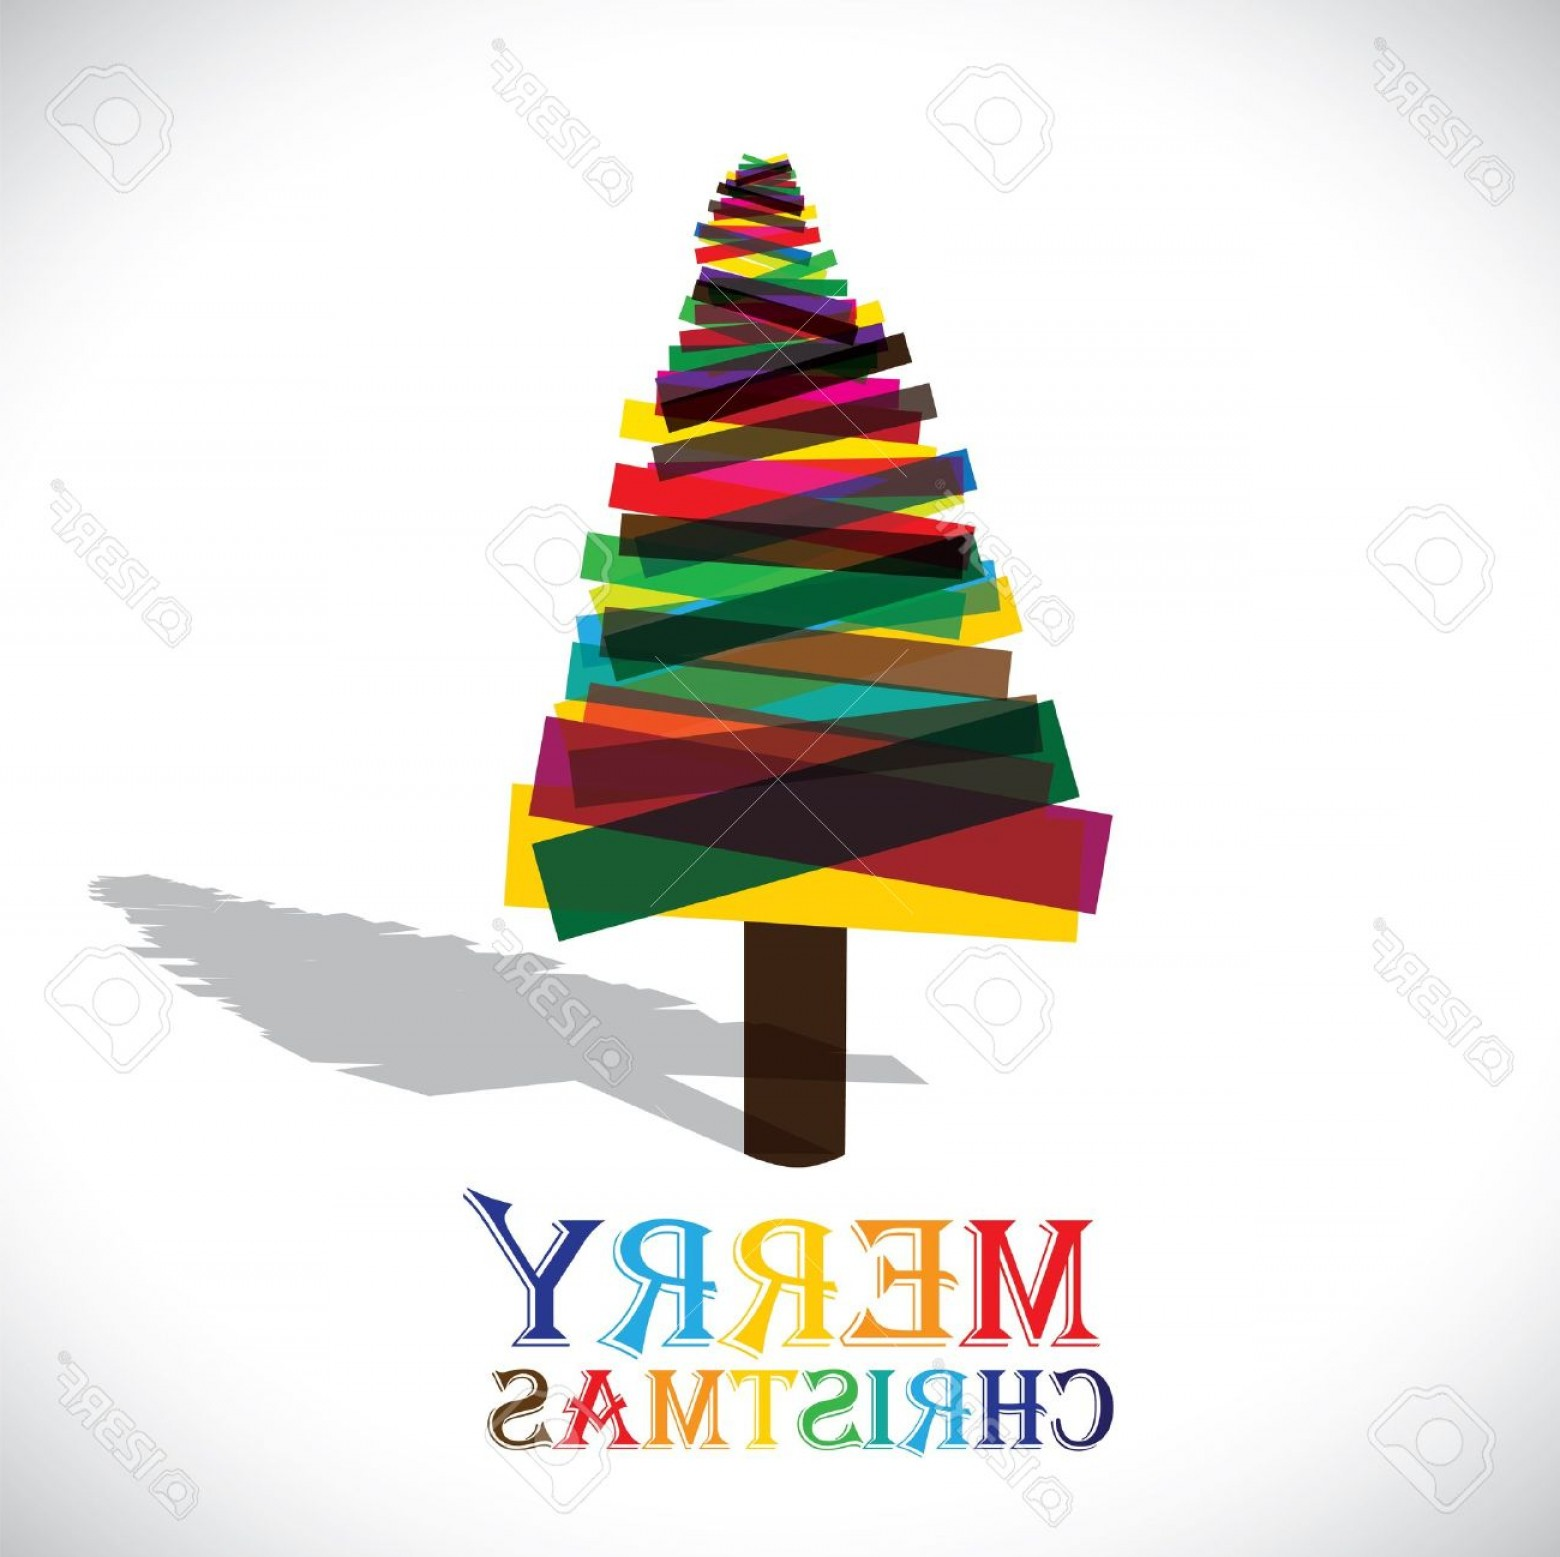 Merry Christmas Vector Graphic: Photoabstract Colorful Xmas Tree On White Background Vector Graphic This Illustration Shows Christmas Tre